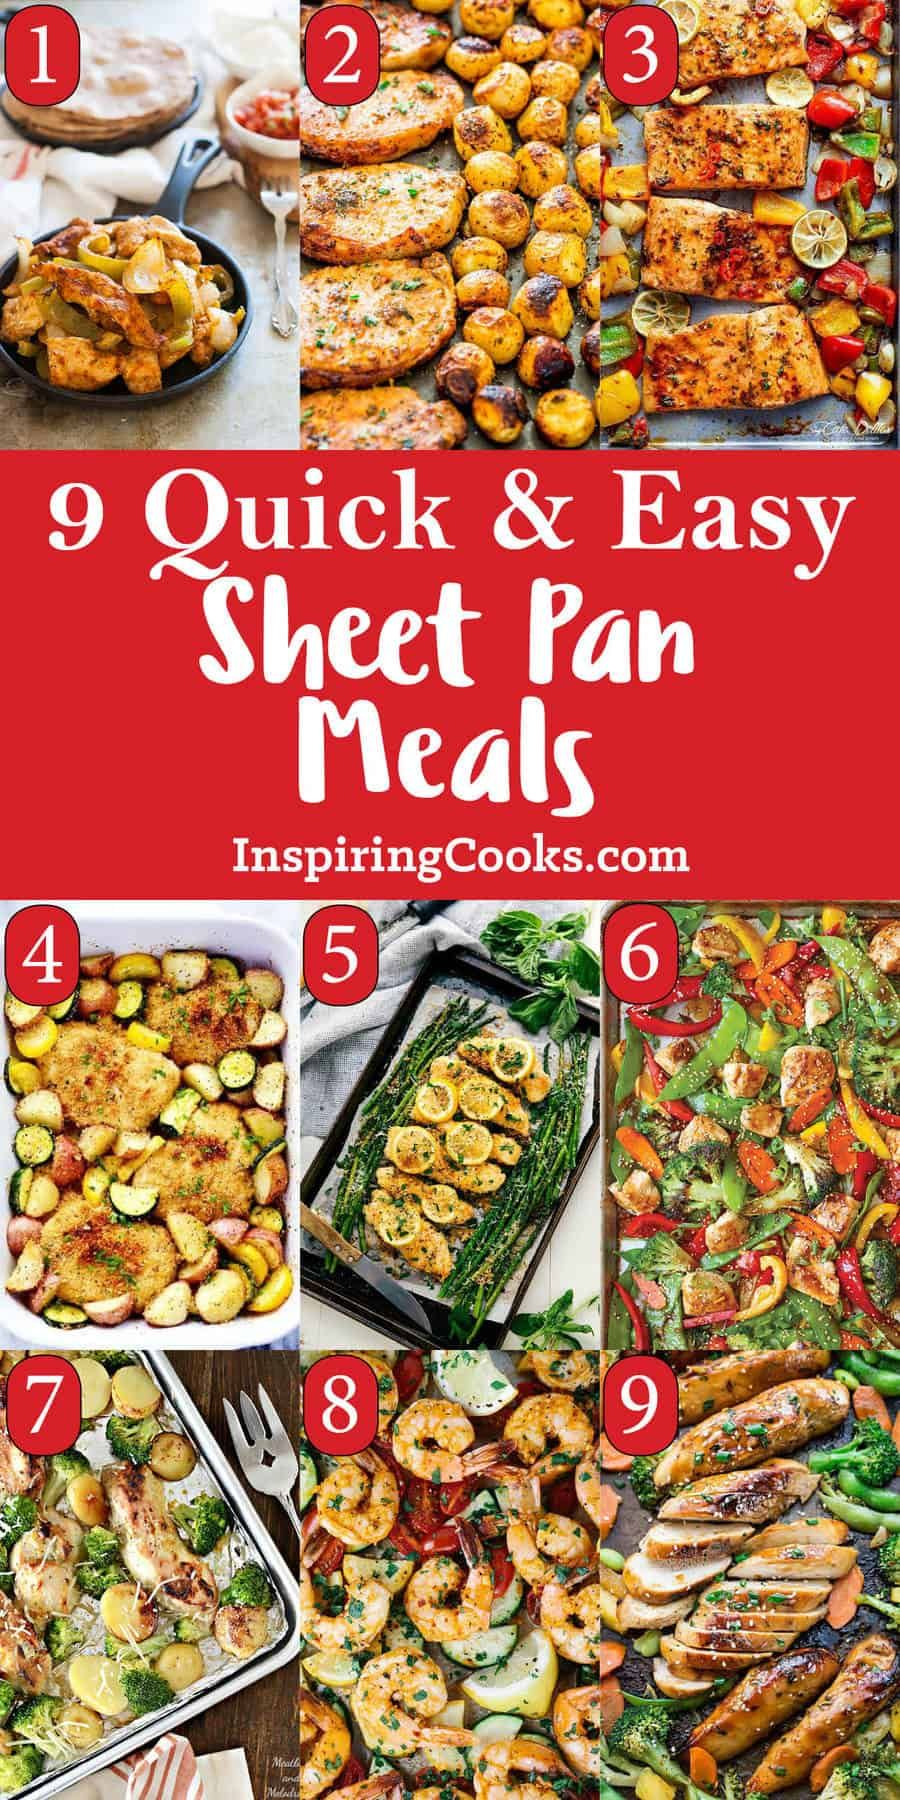 9 of the Best Sheet Pan Meals Recipes on Pinterest images